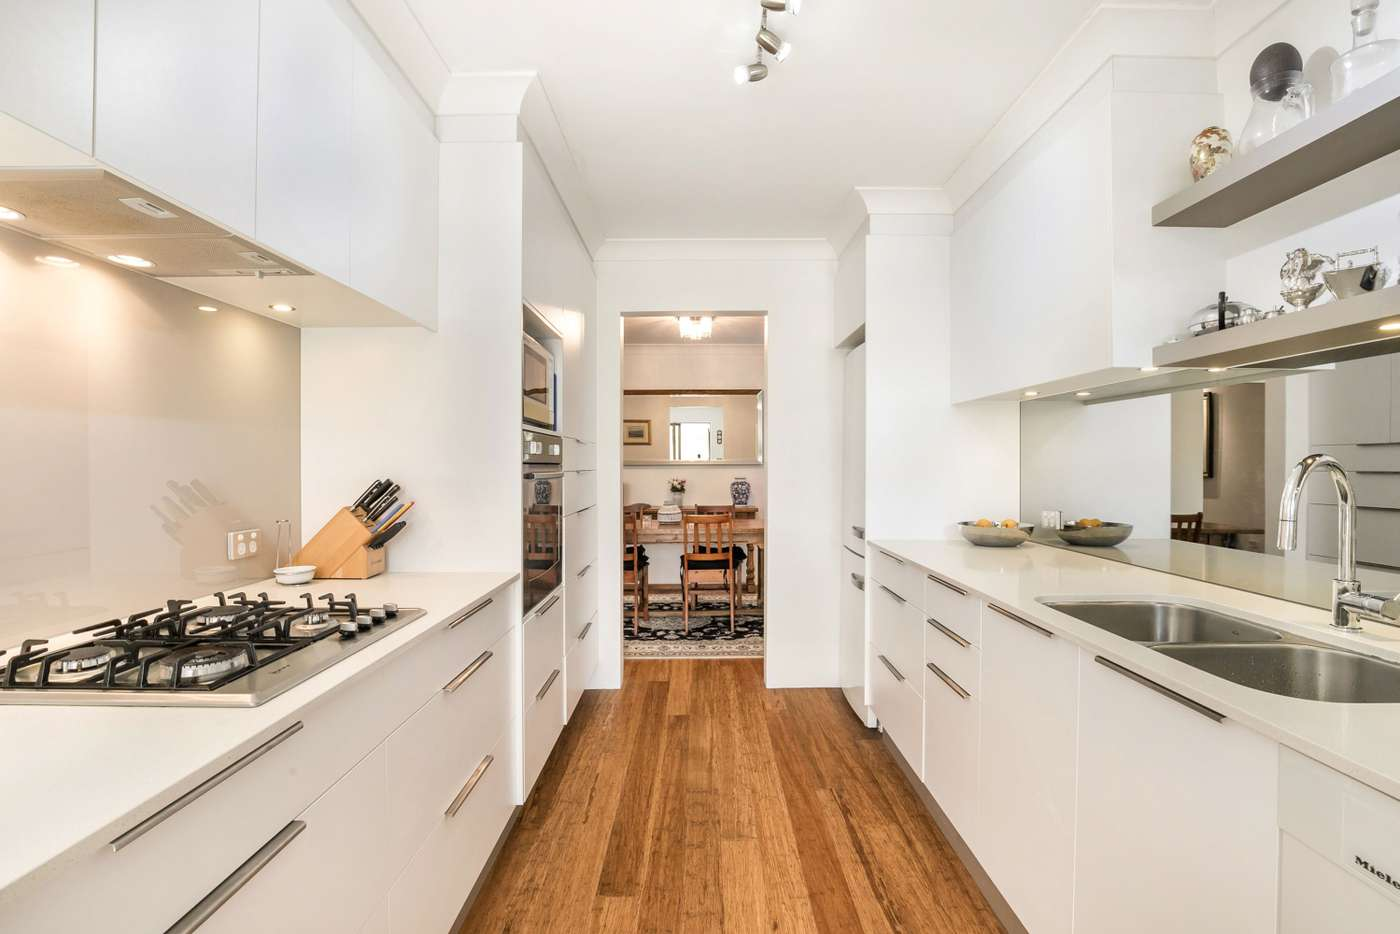 Main view of Homely apartment listing, 9/19 Maryvale Street, Toowong QLD 4066